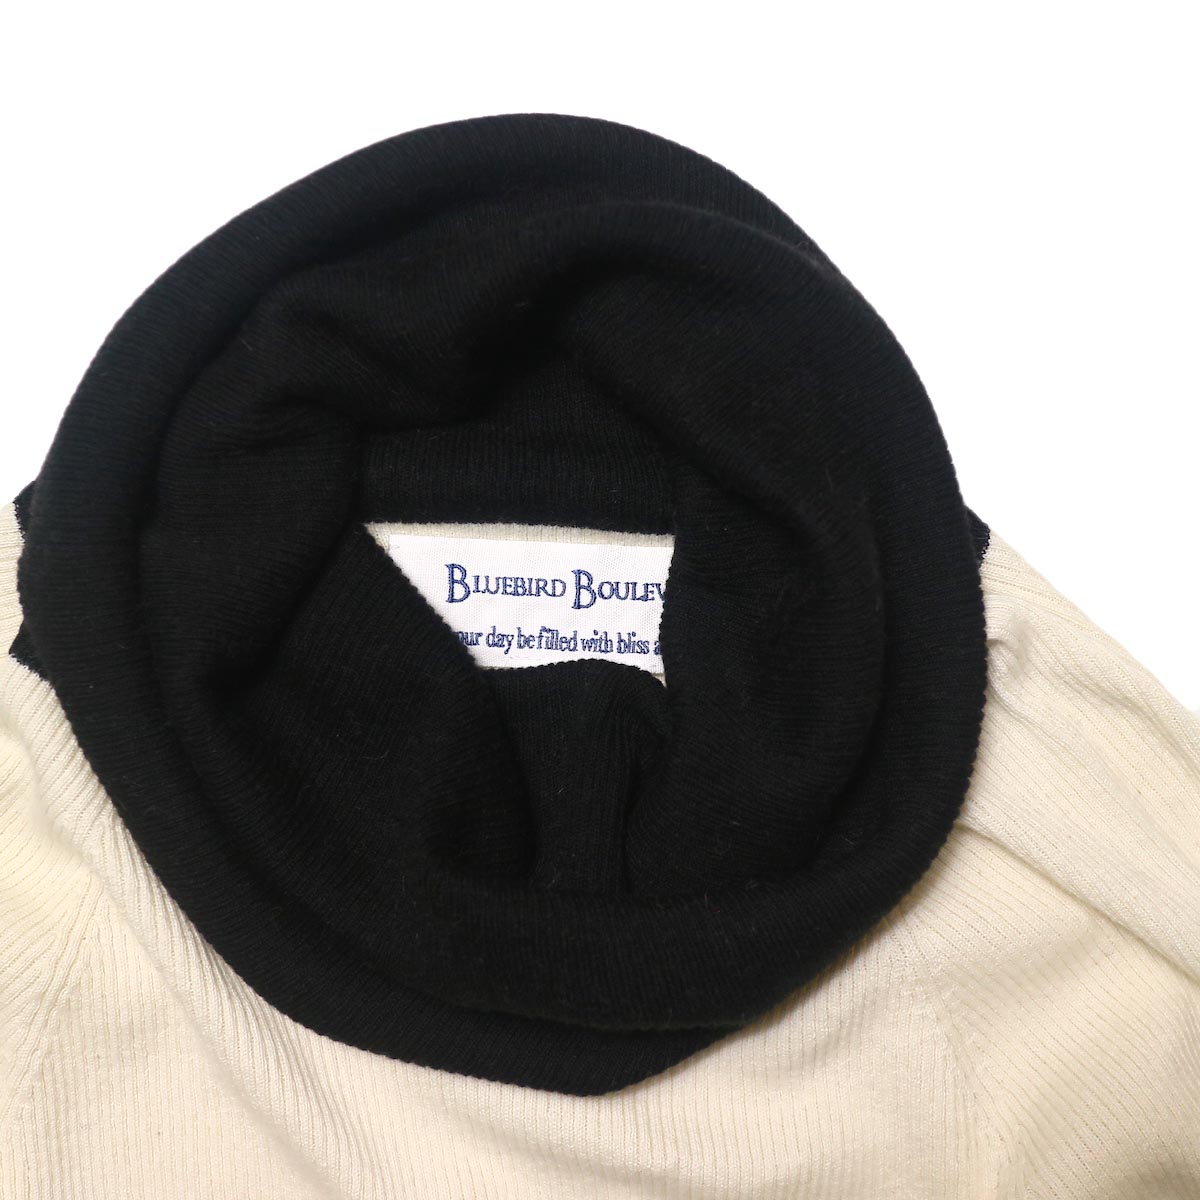 BLUEBIRD BOULEVARD Cotton & Angora Wide Turtleneck Sweater (white) ネック部分